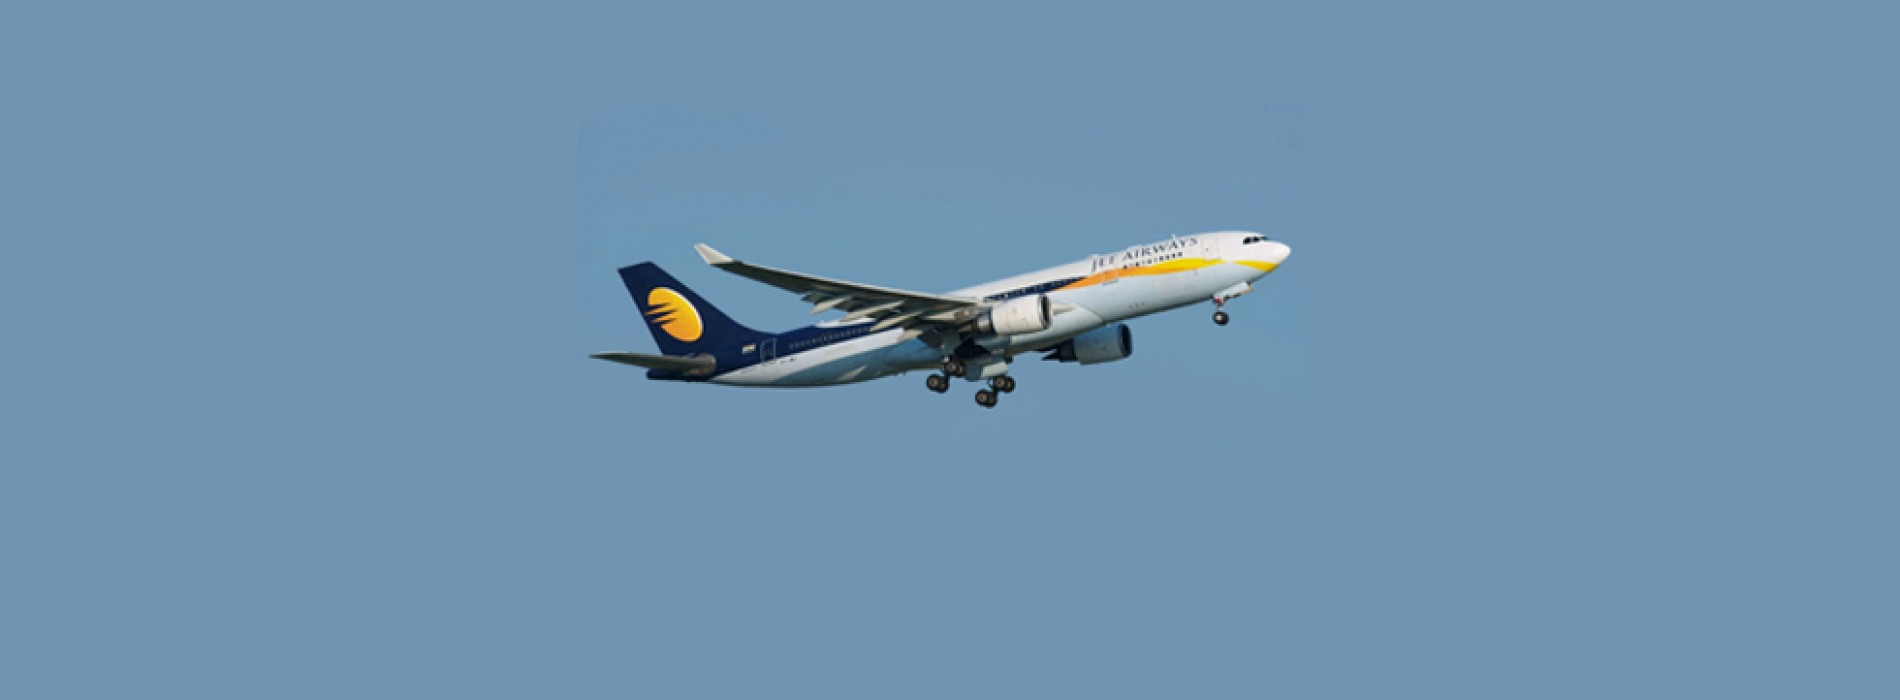 Jet Airways announces a 'Great Premiere Sale' for International Travel